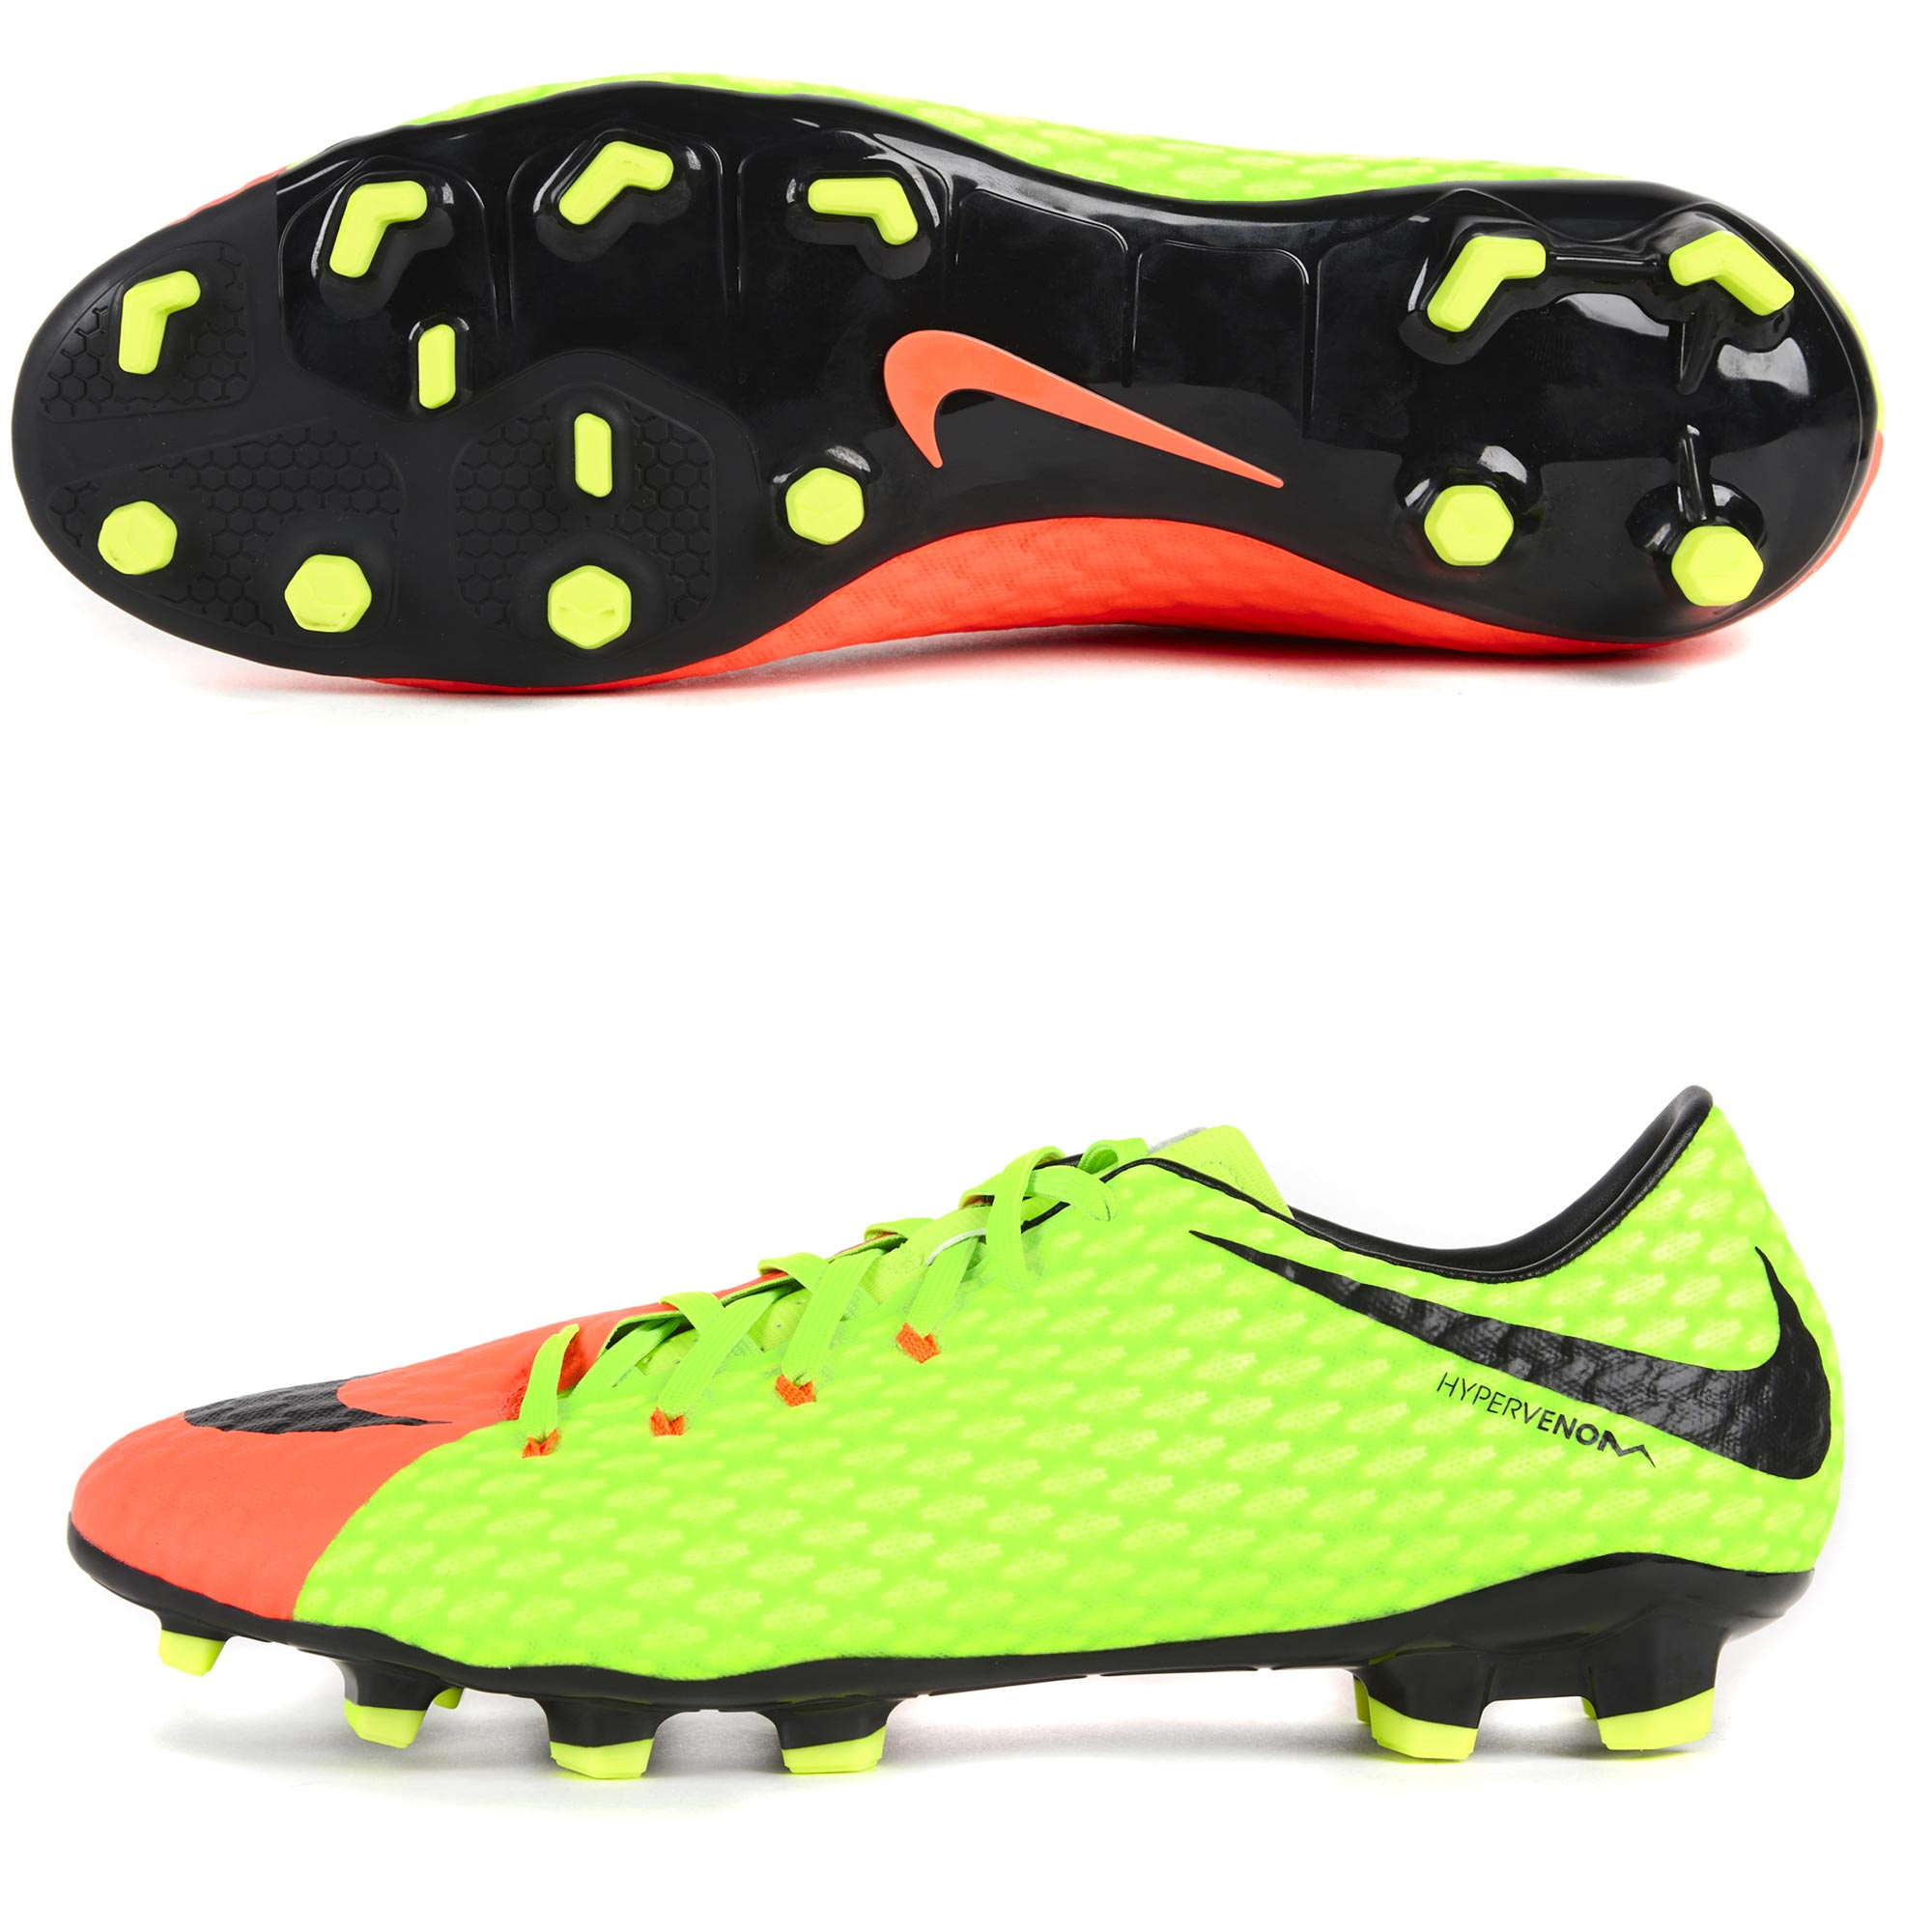 Nike Hypervenom Phinish II Firm Ground Football Boots - Electric Green